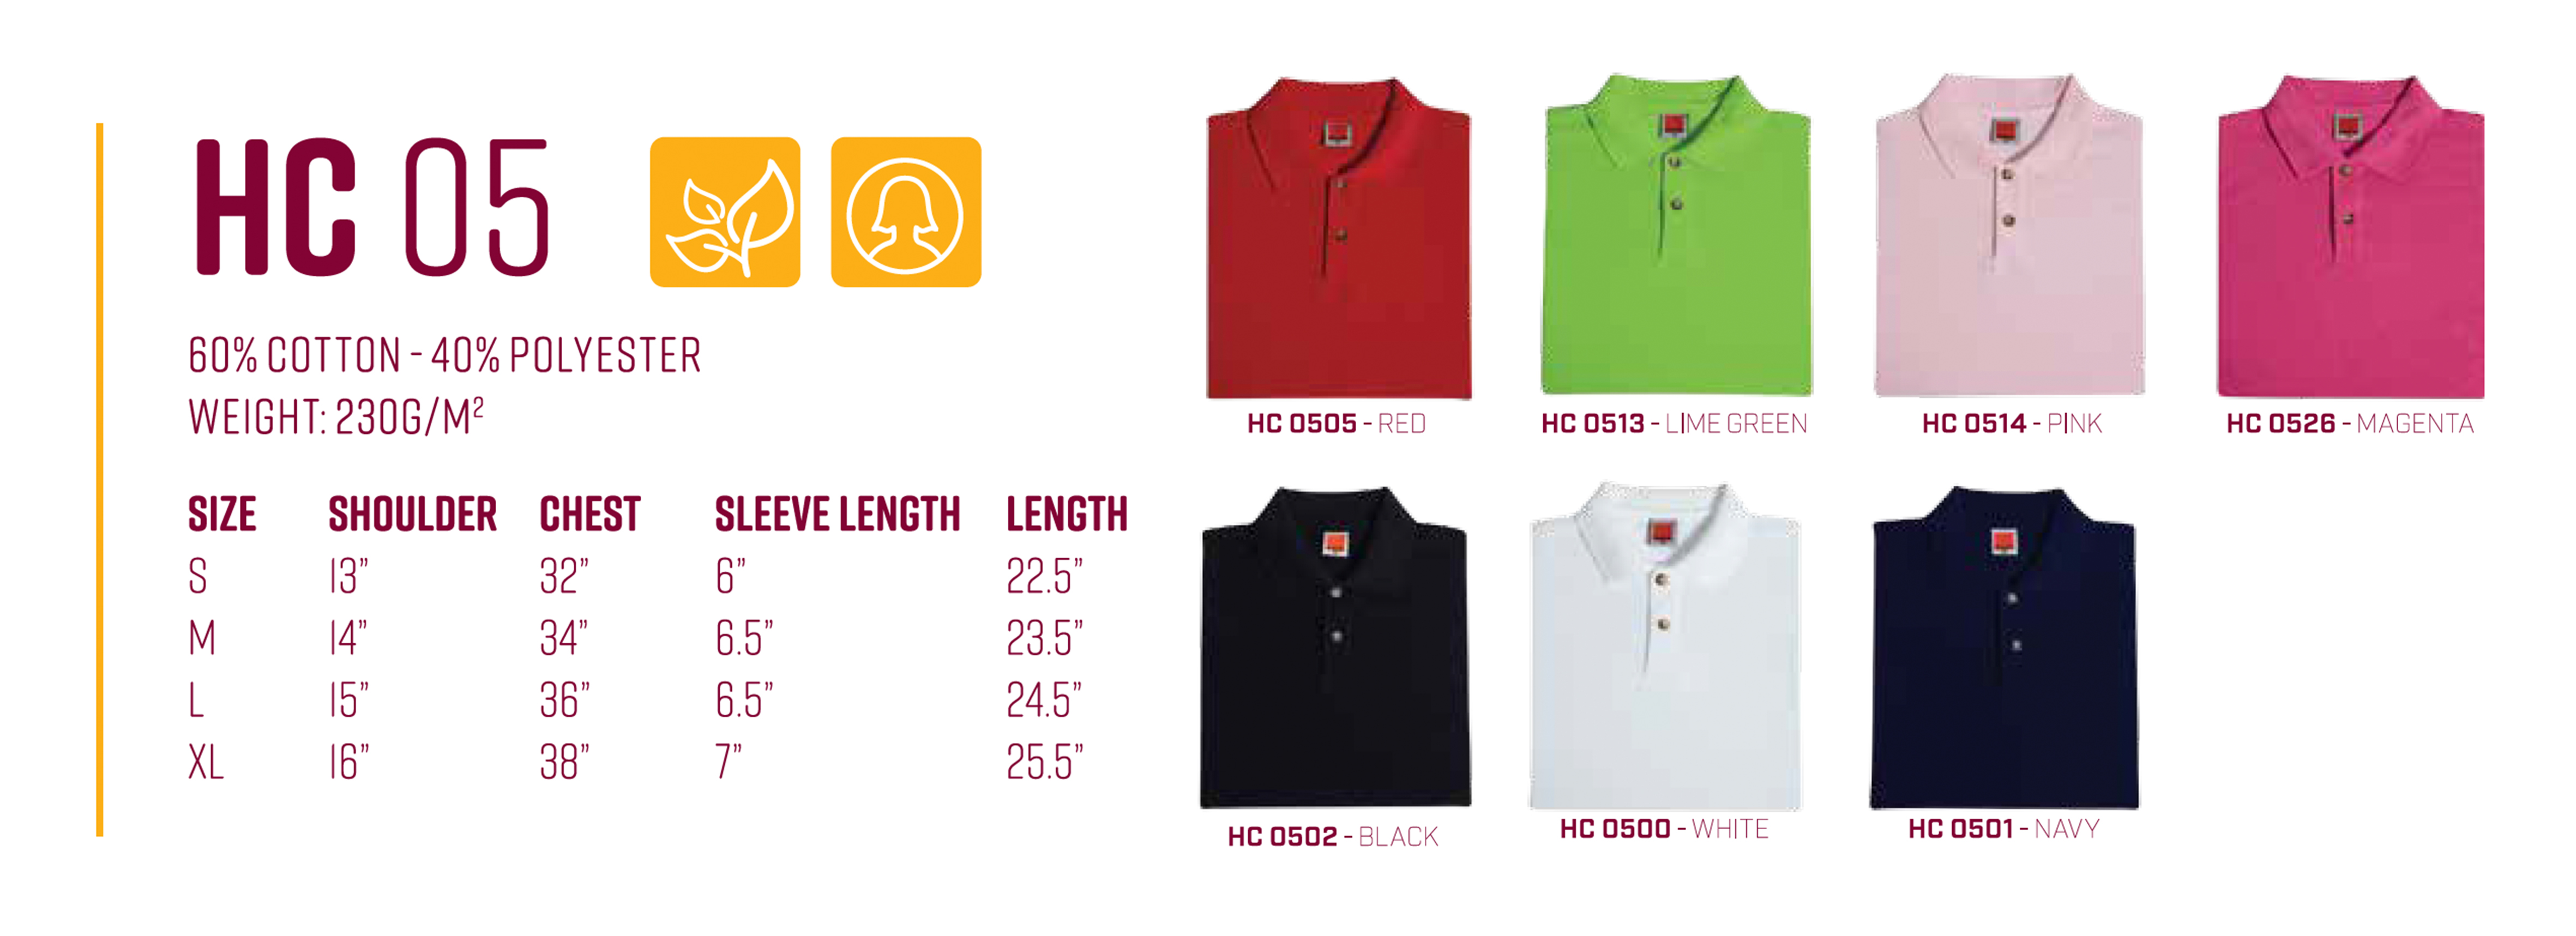 Ladies polo tshirt printing supply cotton polo shirt no moq ladies polo tshirt geenschuldenfo Image collections